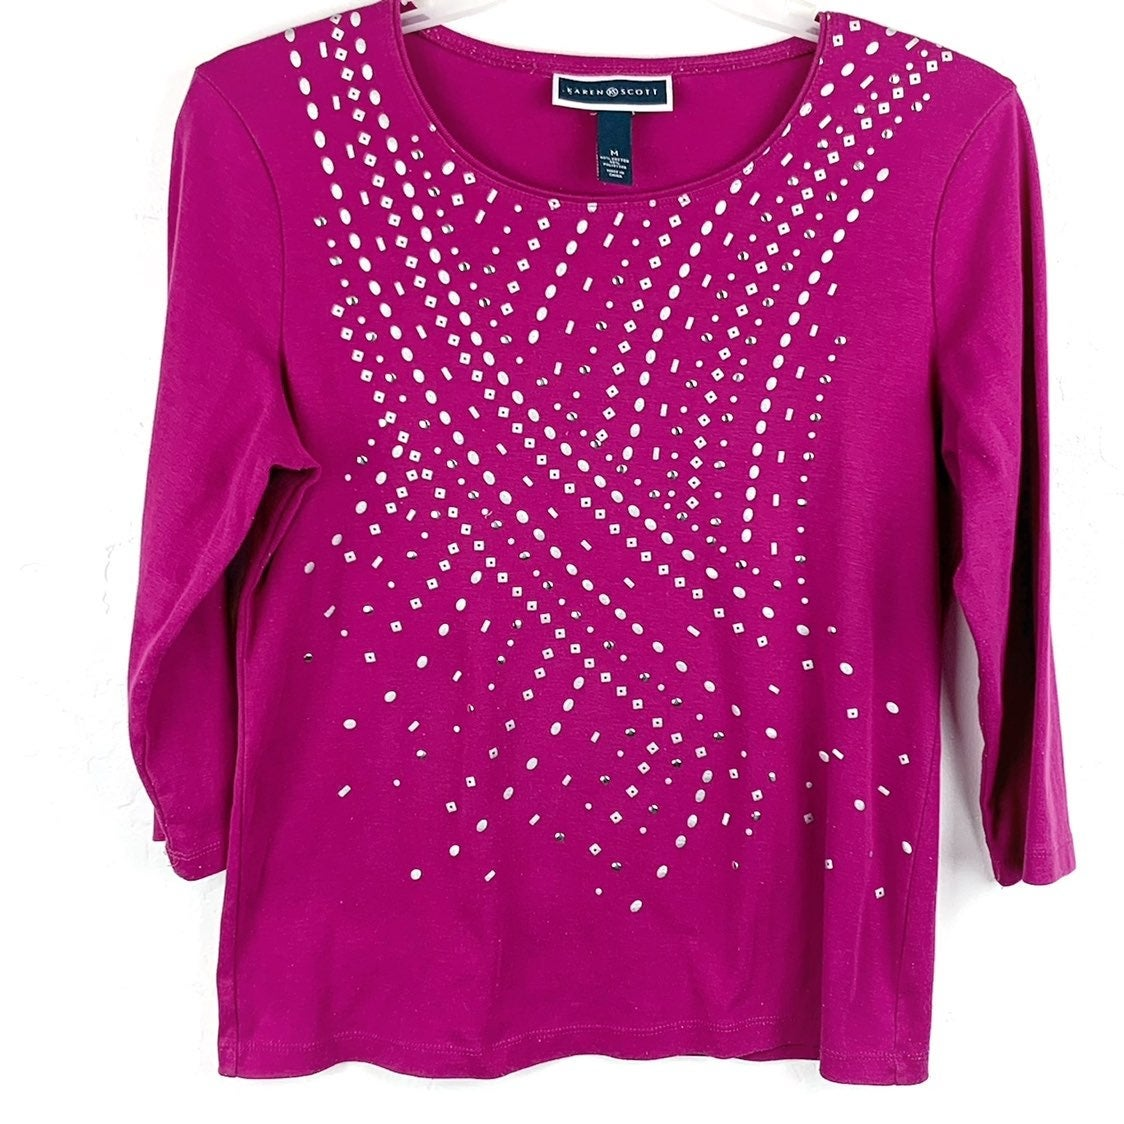 Studded Karen Scott Top in pink